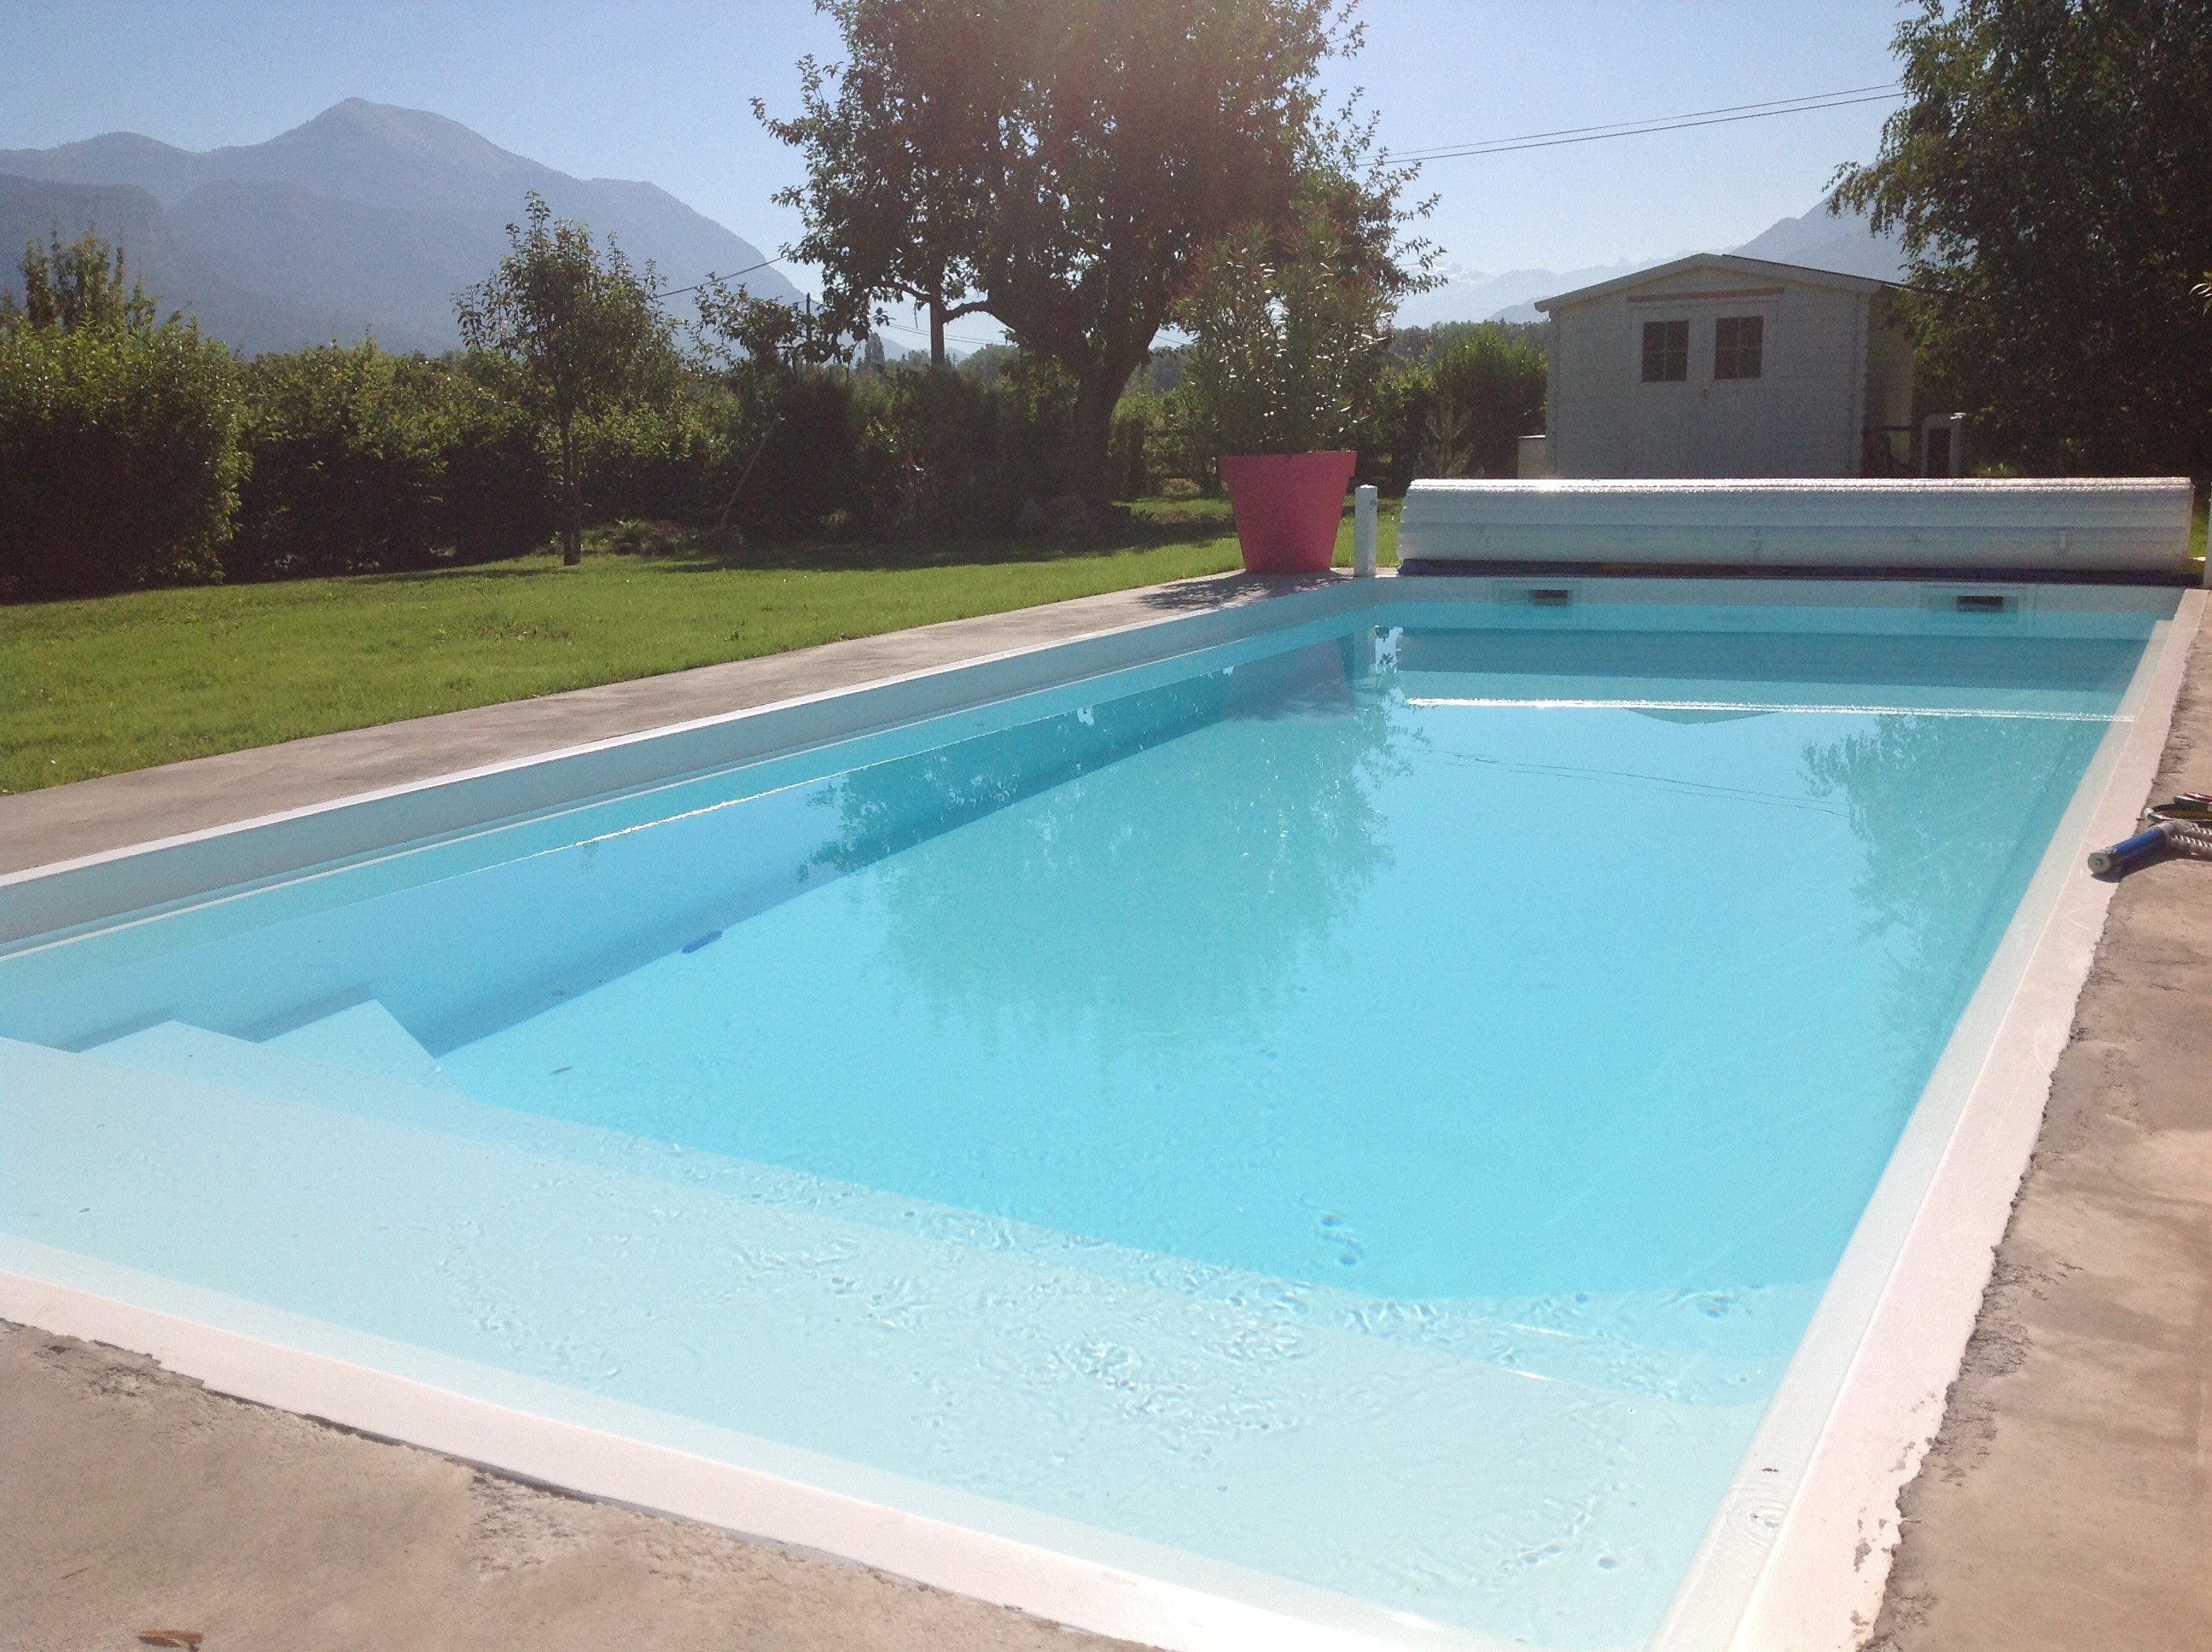 Piscine coque polyester california 925 coque piscine for Installation volet roulant piscine